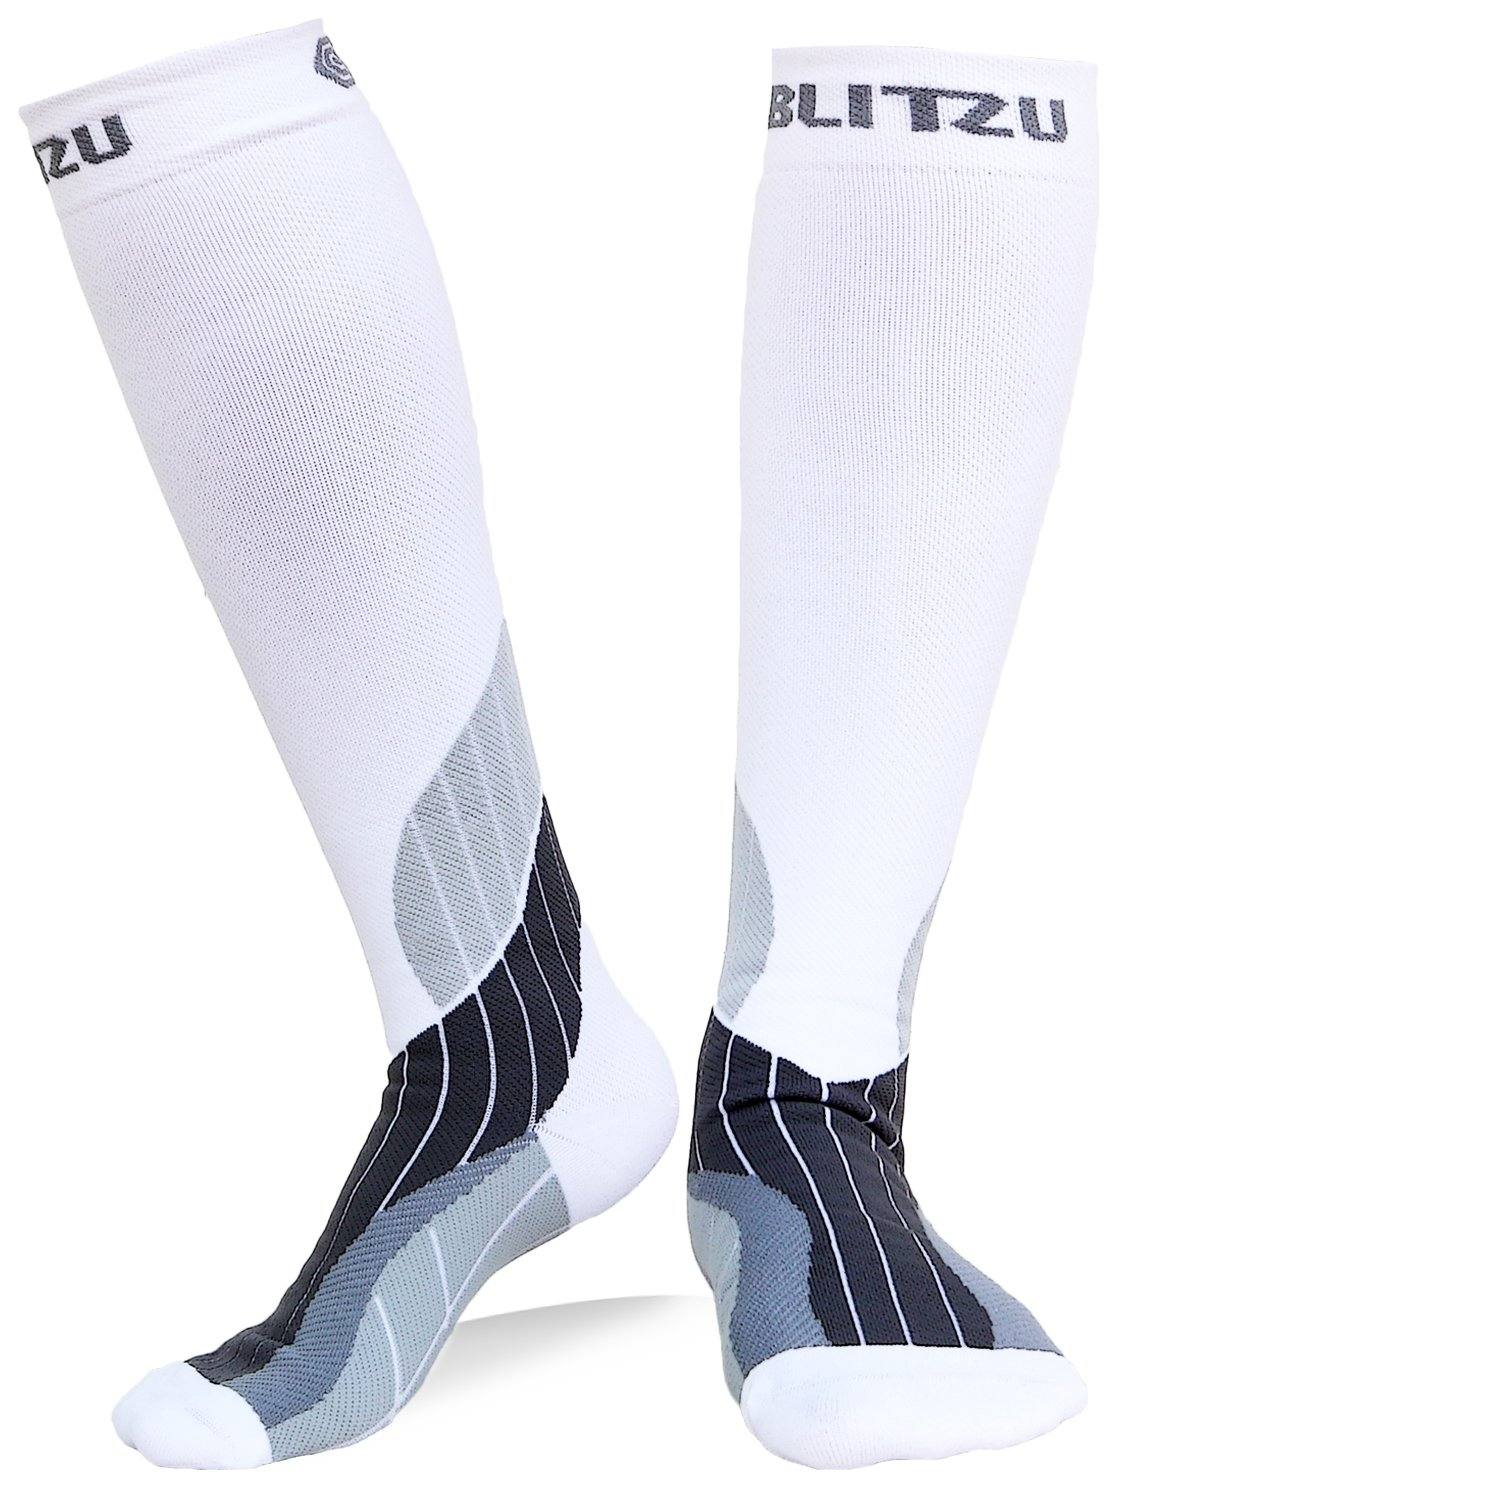 BLITZU Compression Socks 20-30mmHg for Men Women Recovery for Running Medical Athletic Edema Diabetic Varicose Veins Travel Pregnancy Relief Shin Splints Nursing (Small/Medium, Snow)